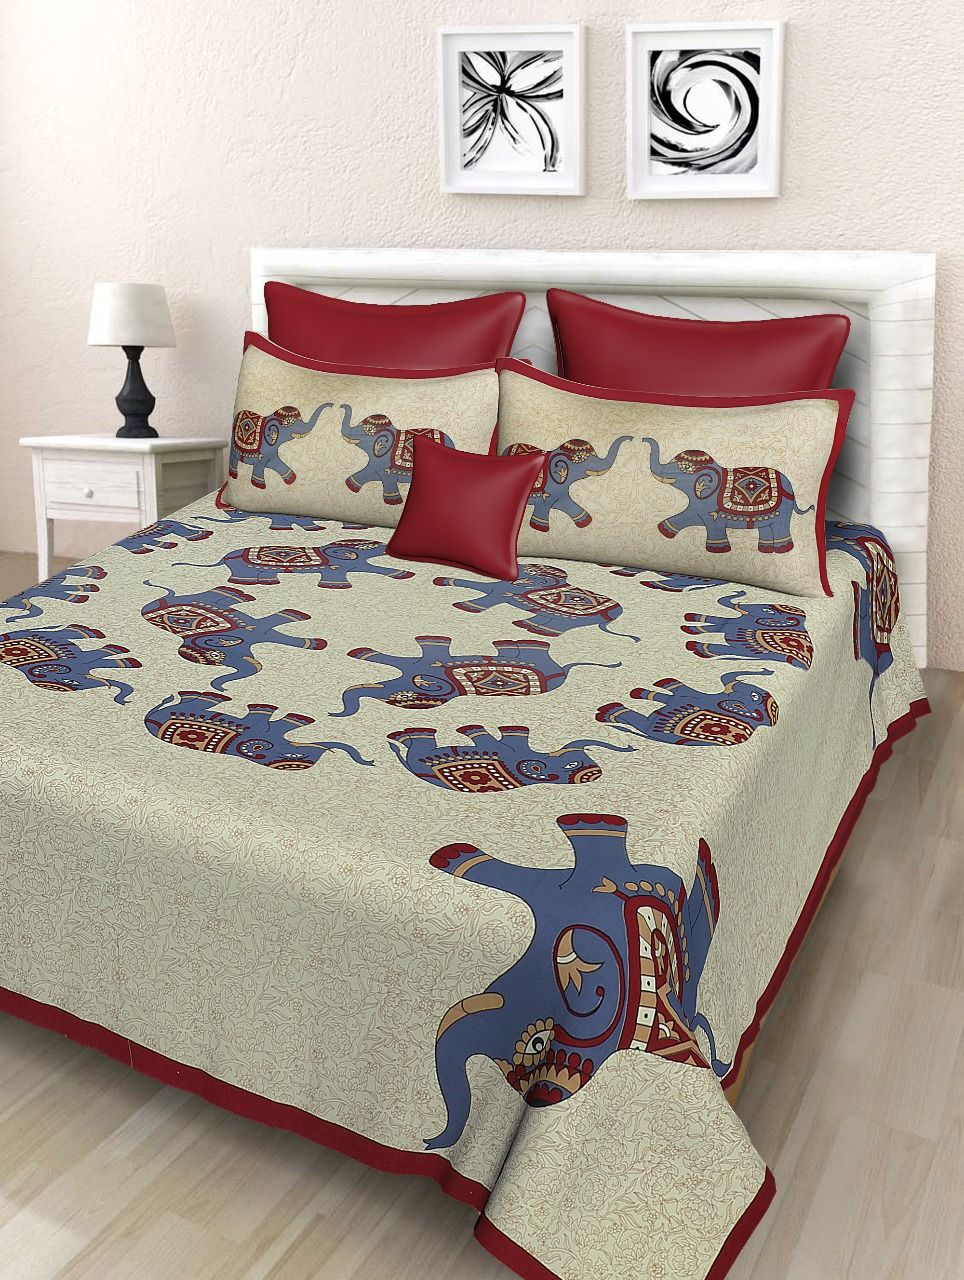 Cotton Bed Sheets Online Ealpha Is The Bestonlinepingwebsites Provide A Huge Collection Of Double At Low Price